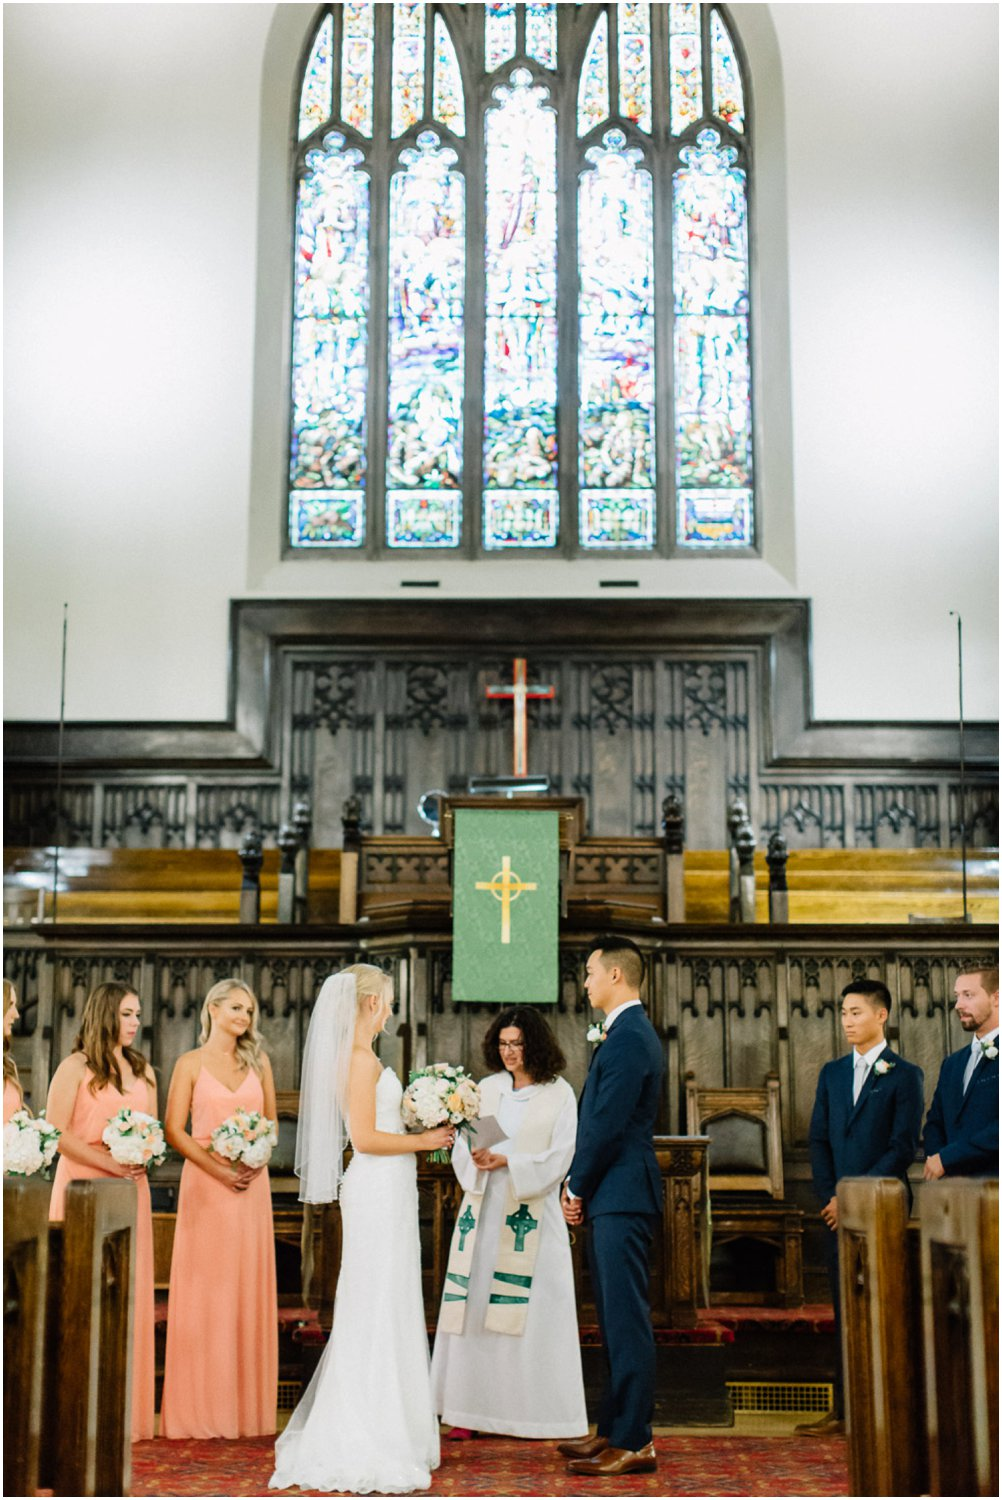 Knox united church - Calgary Wedding Photographer_4971